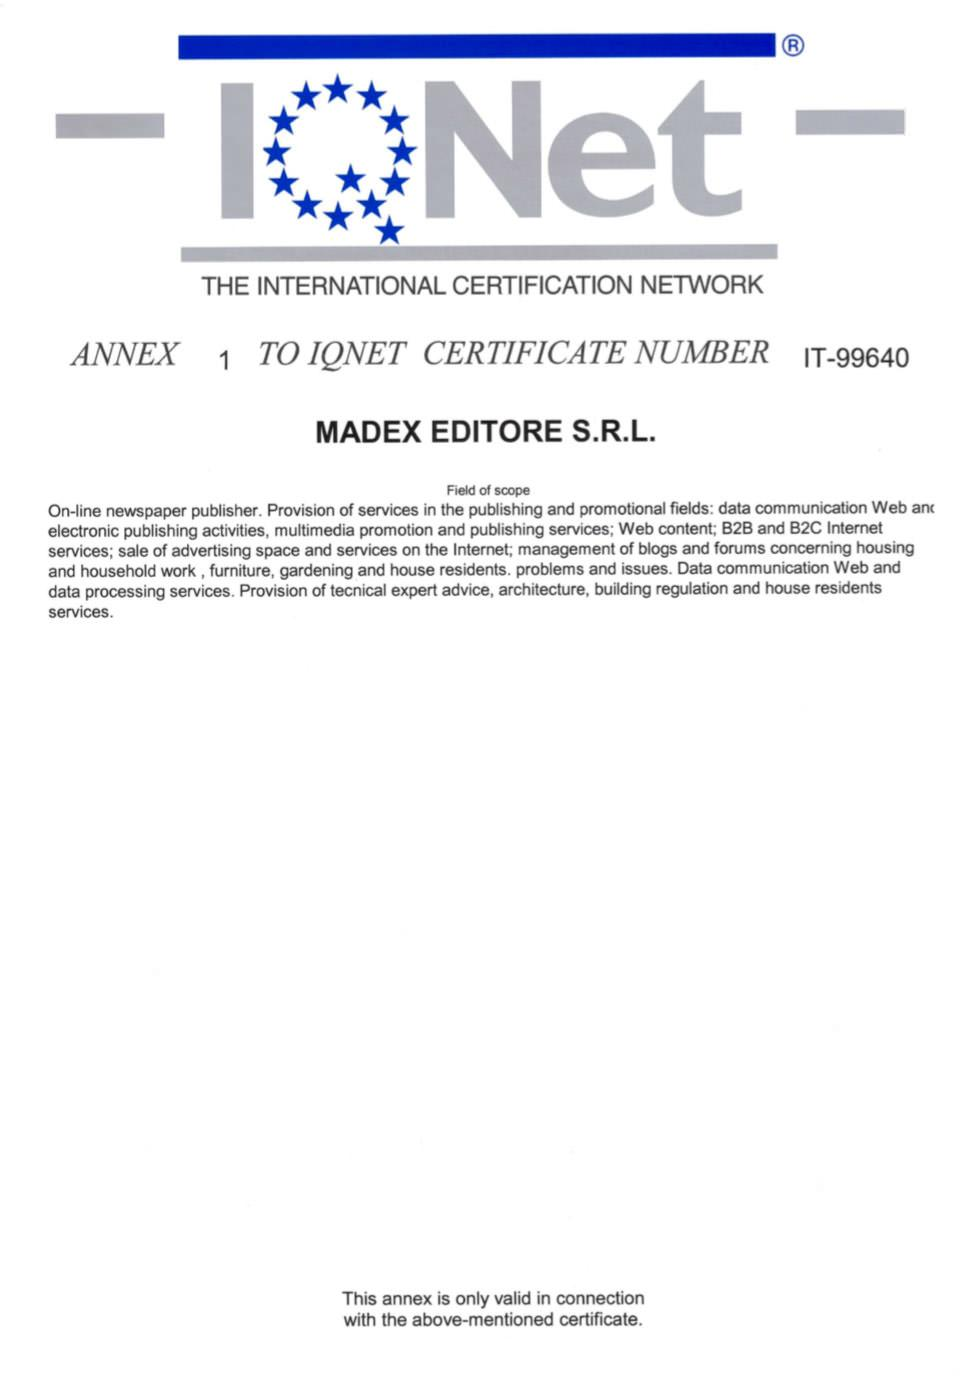 Certificate ISO 9001:2015 IQNET 2